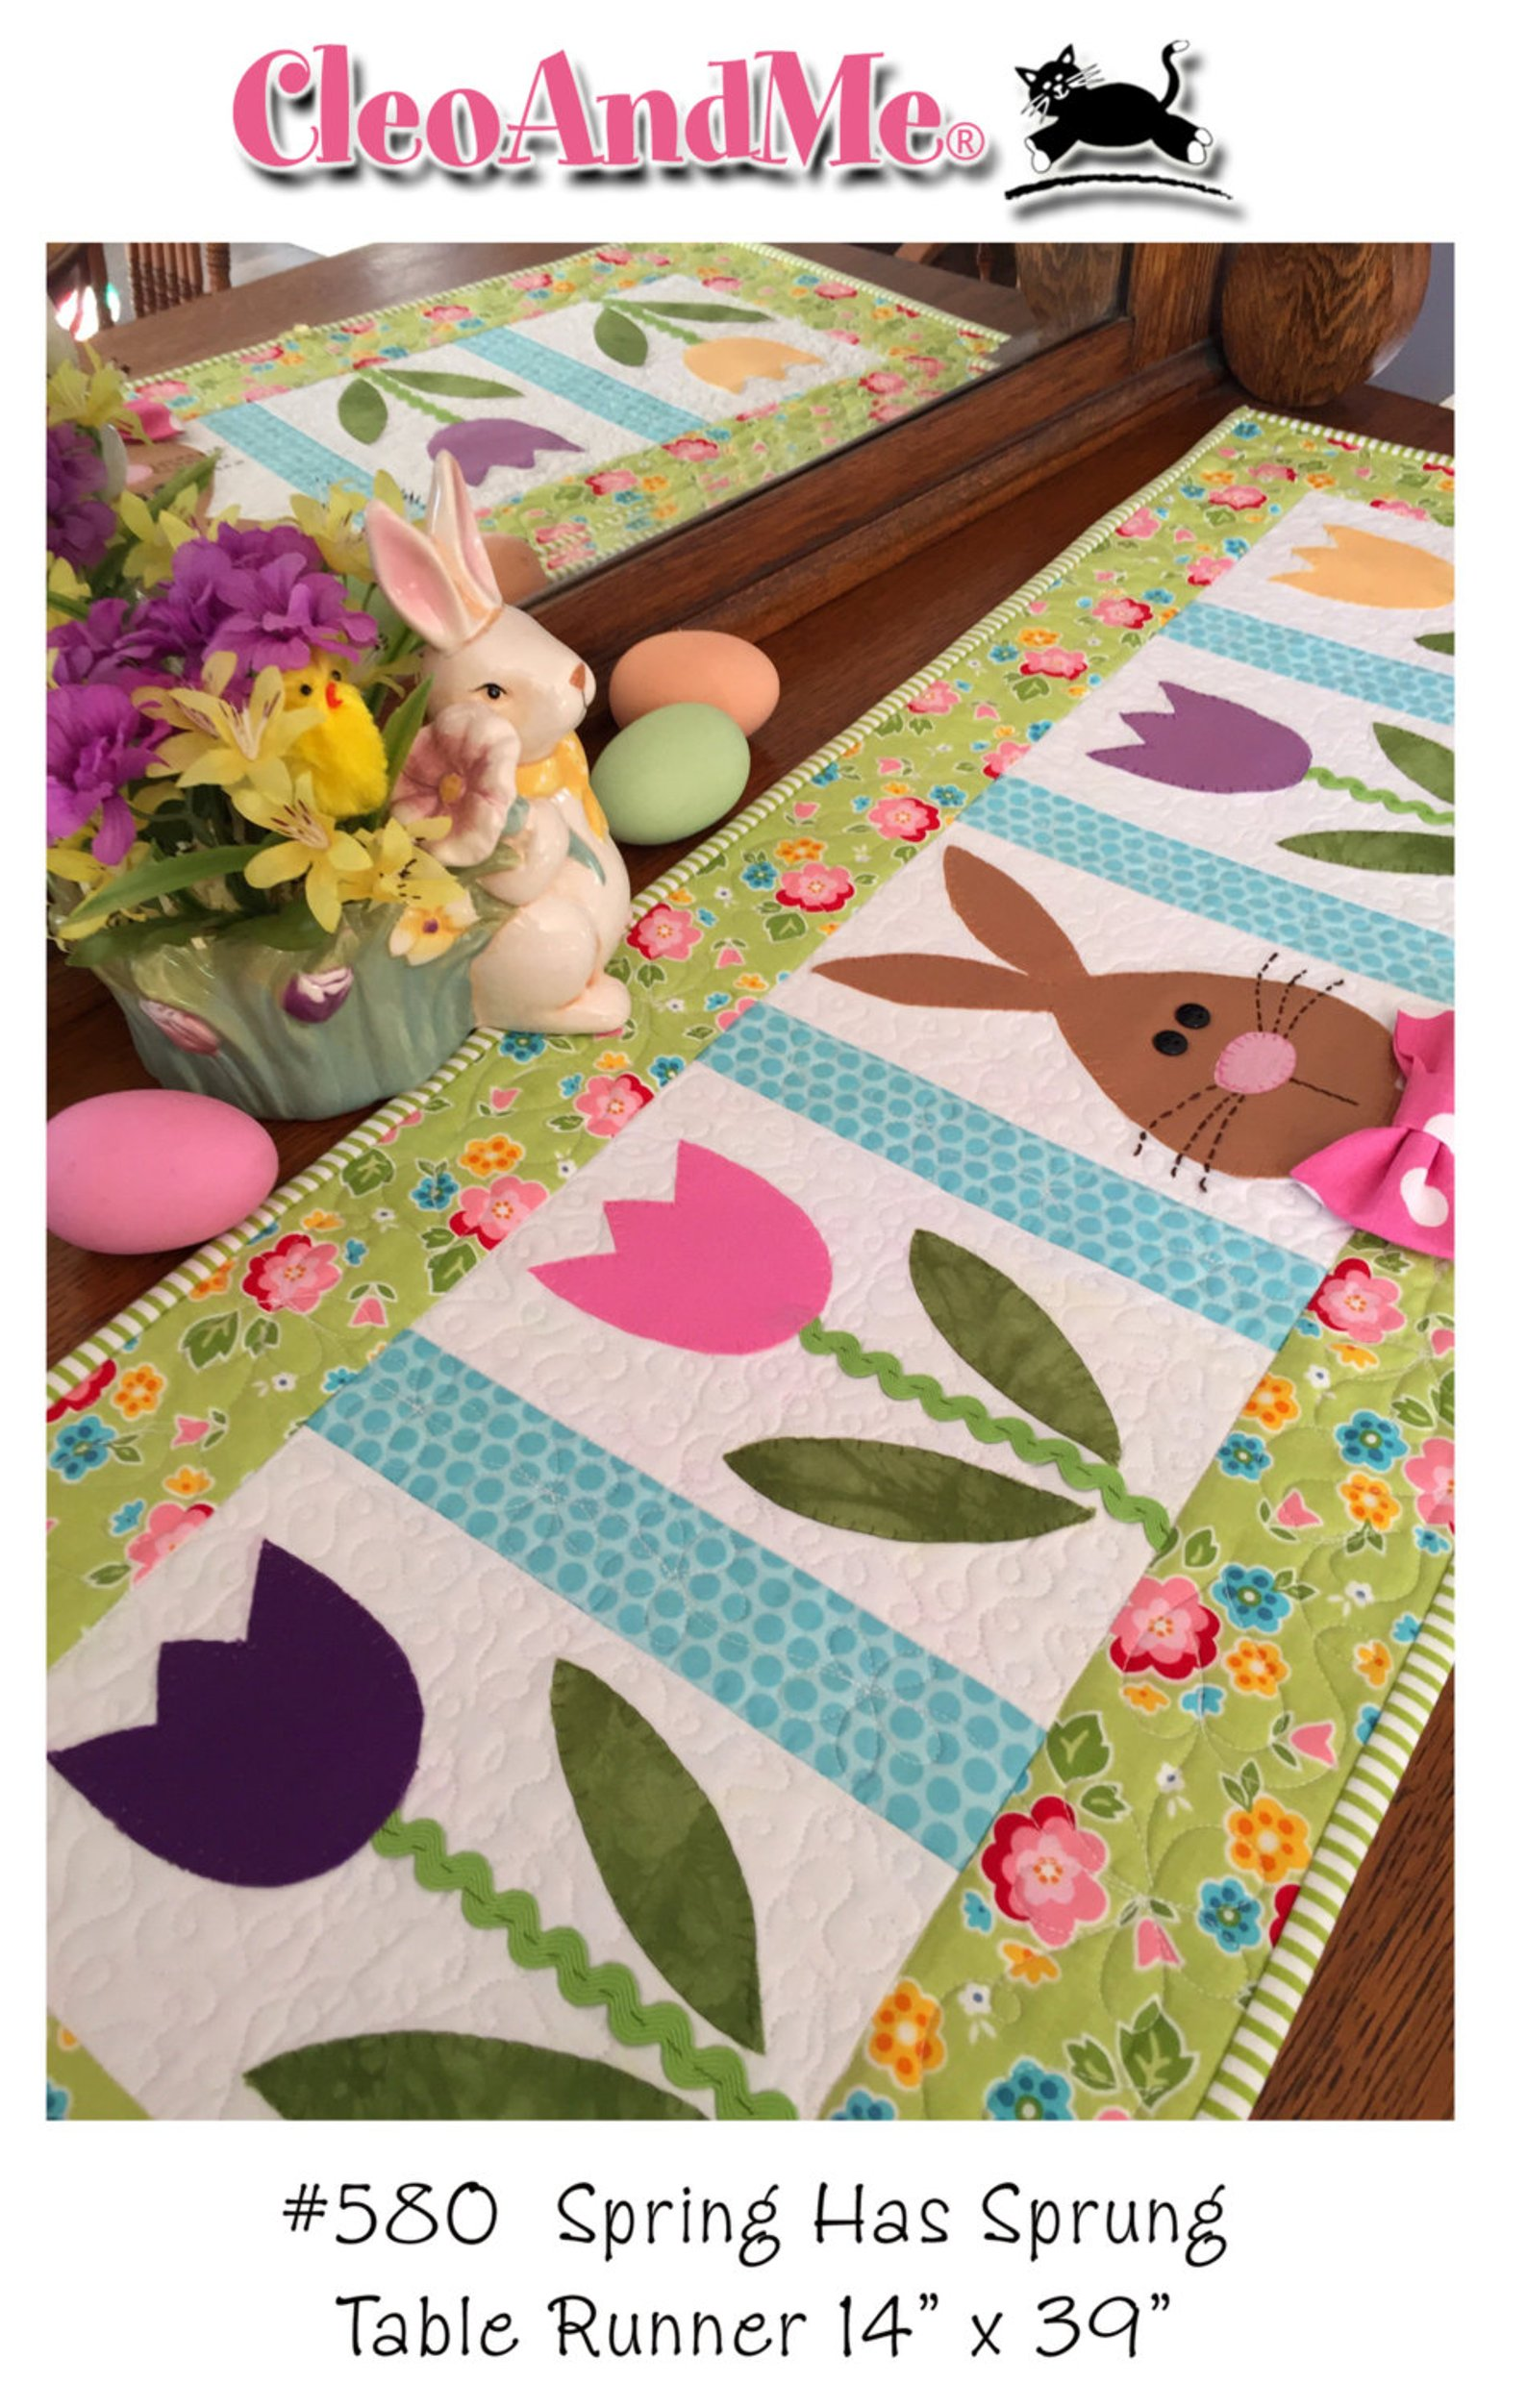 Spring Has Sprung- table runner pattern and Kit by Cleo and Me